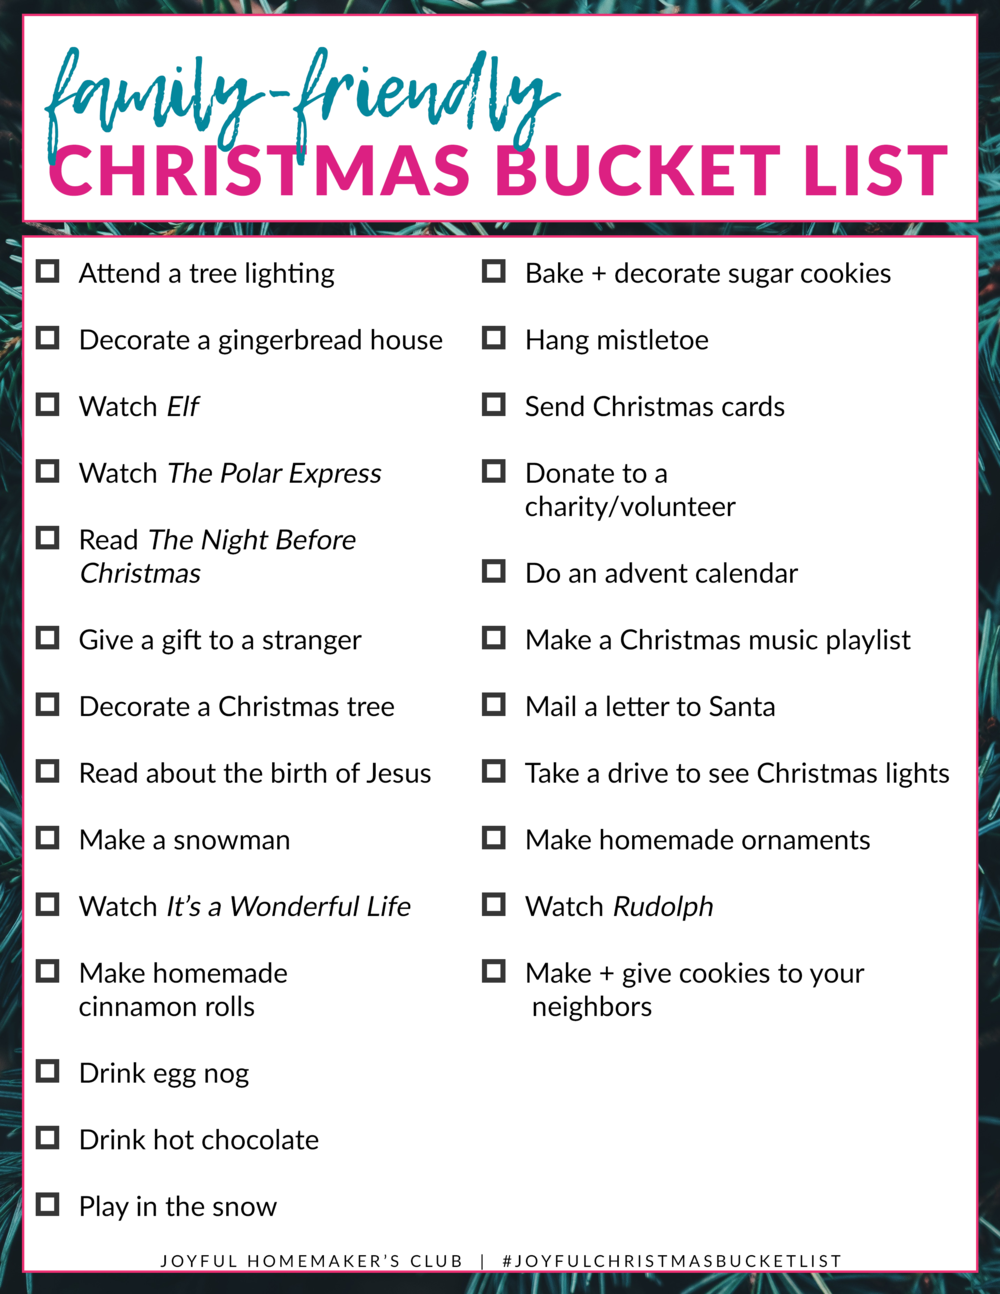 Try out the #Christmas #BucketList #Challenge! I love all 25 activities on the list -- they are perfect for bringing JOY to the Christmas season!